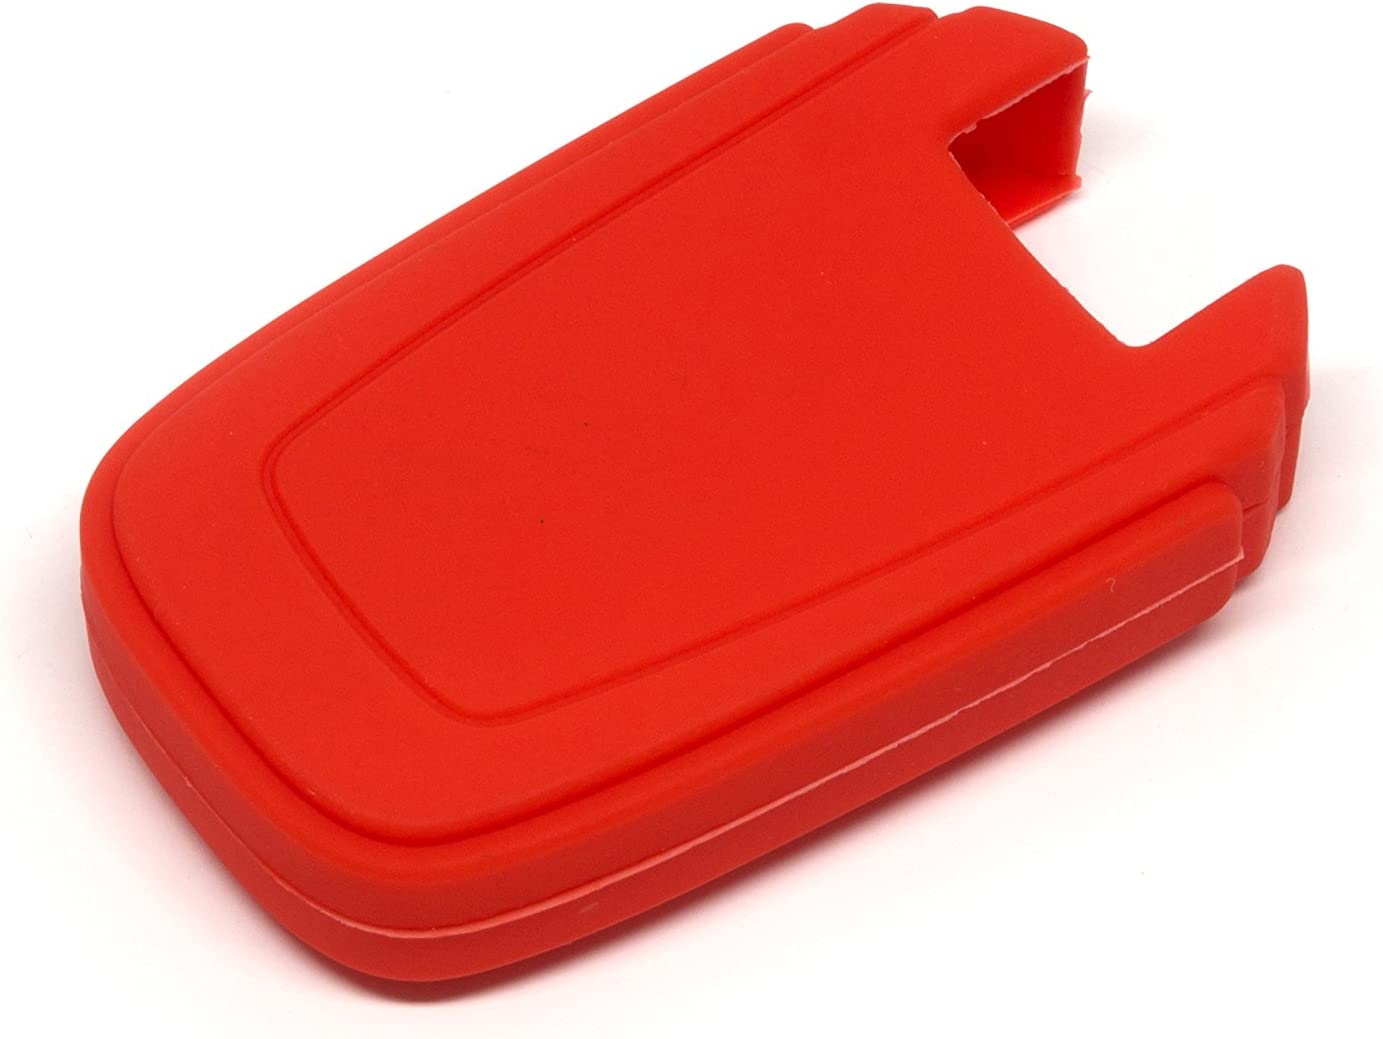 Isuzu D-Max Mu-x 2.5 Silicone Protecting Remote Key Case Cover Fob Holder for All New Isuzu D-max red Mu-x 2.5 Pananas